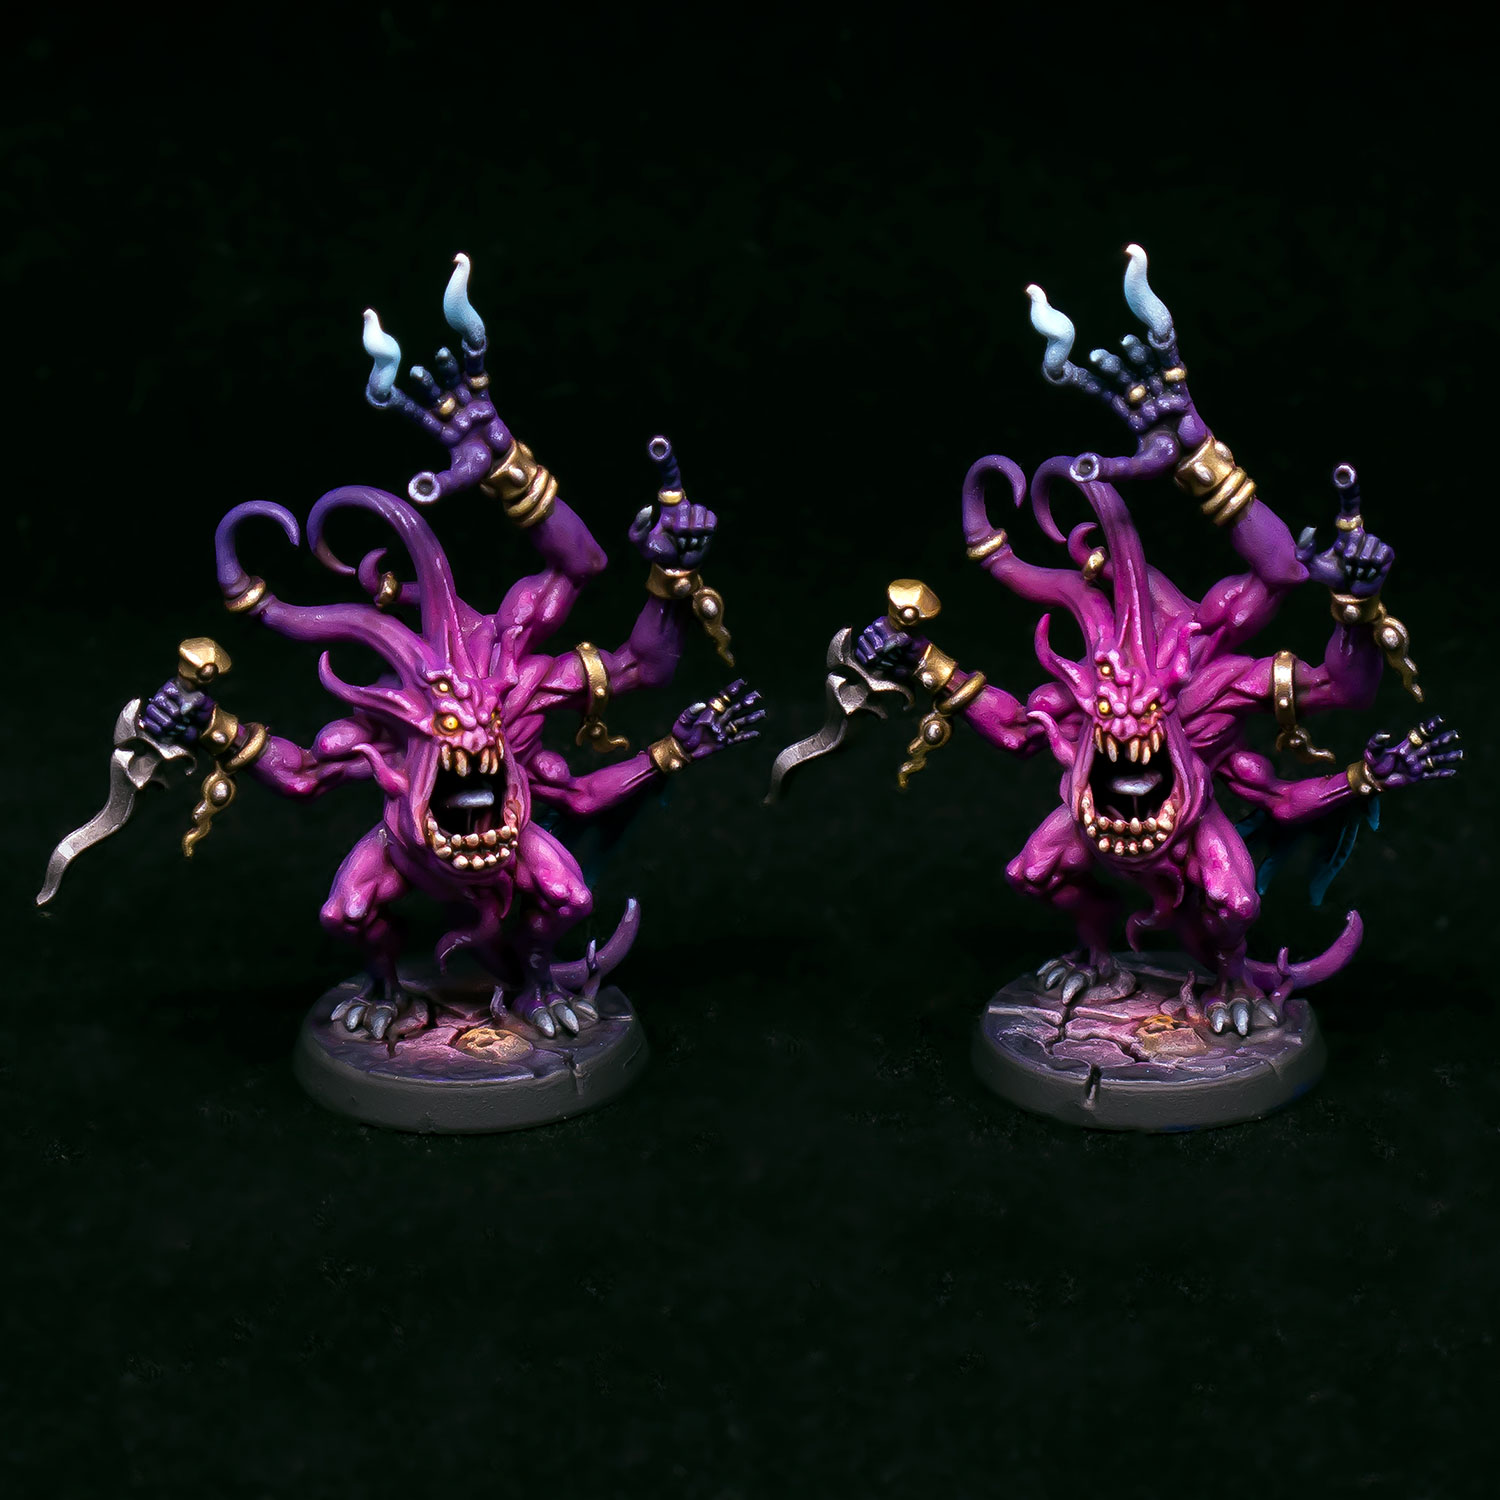 The Mighty Brush Pink Horrors